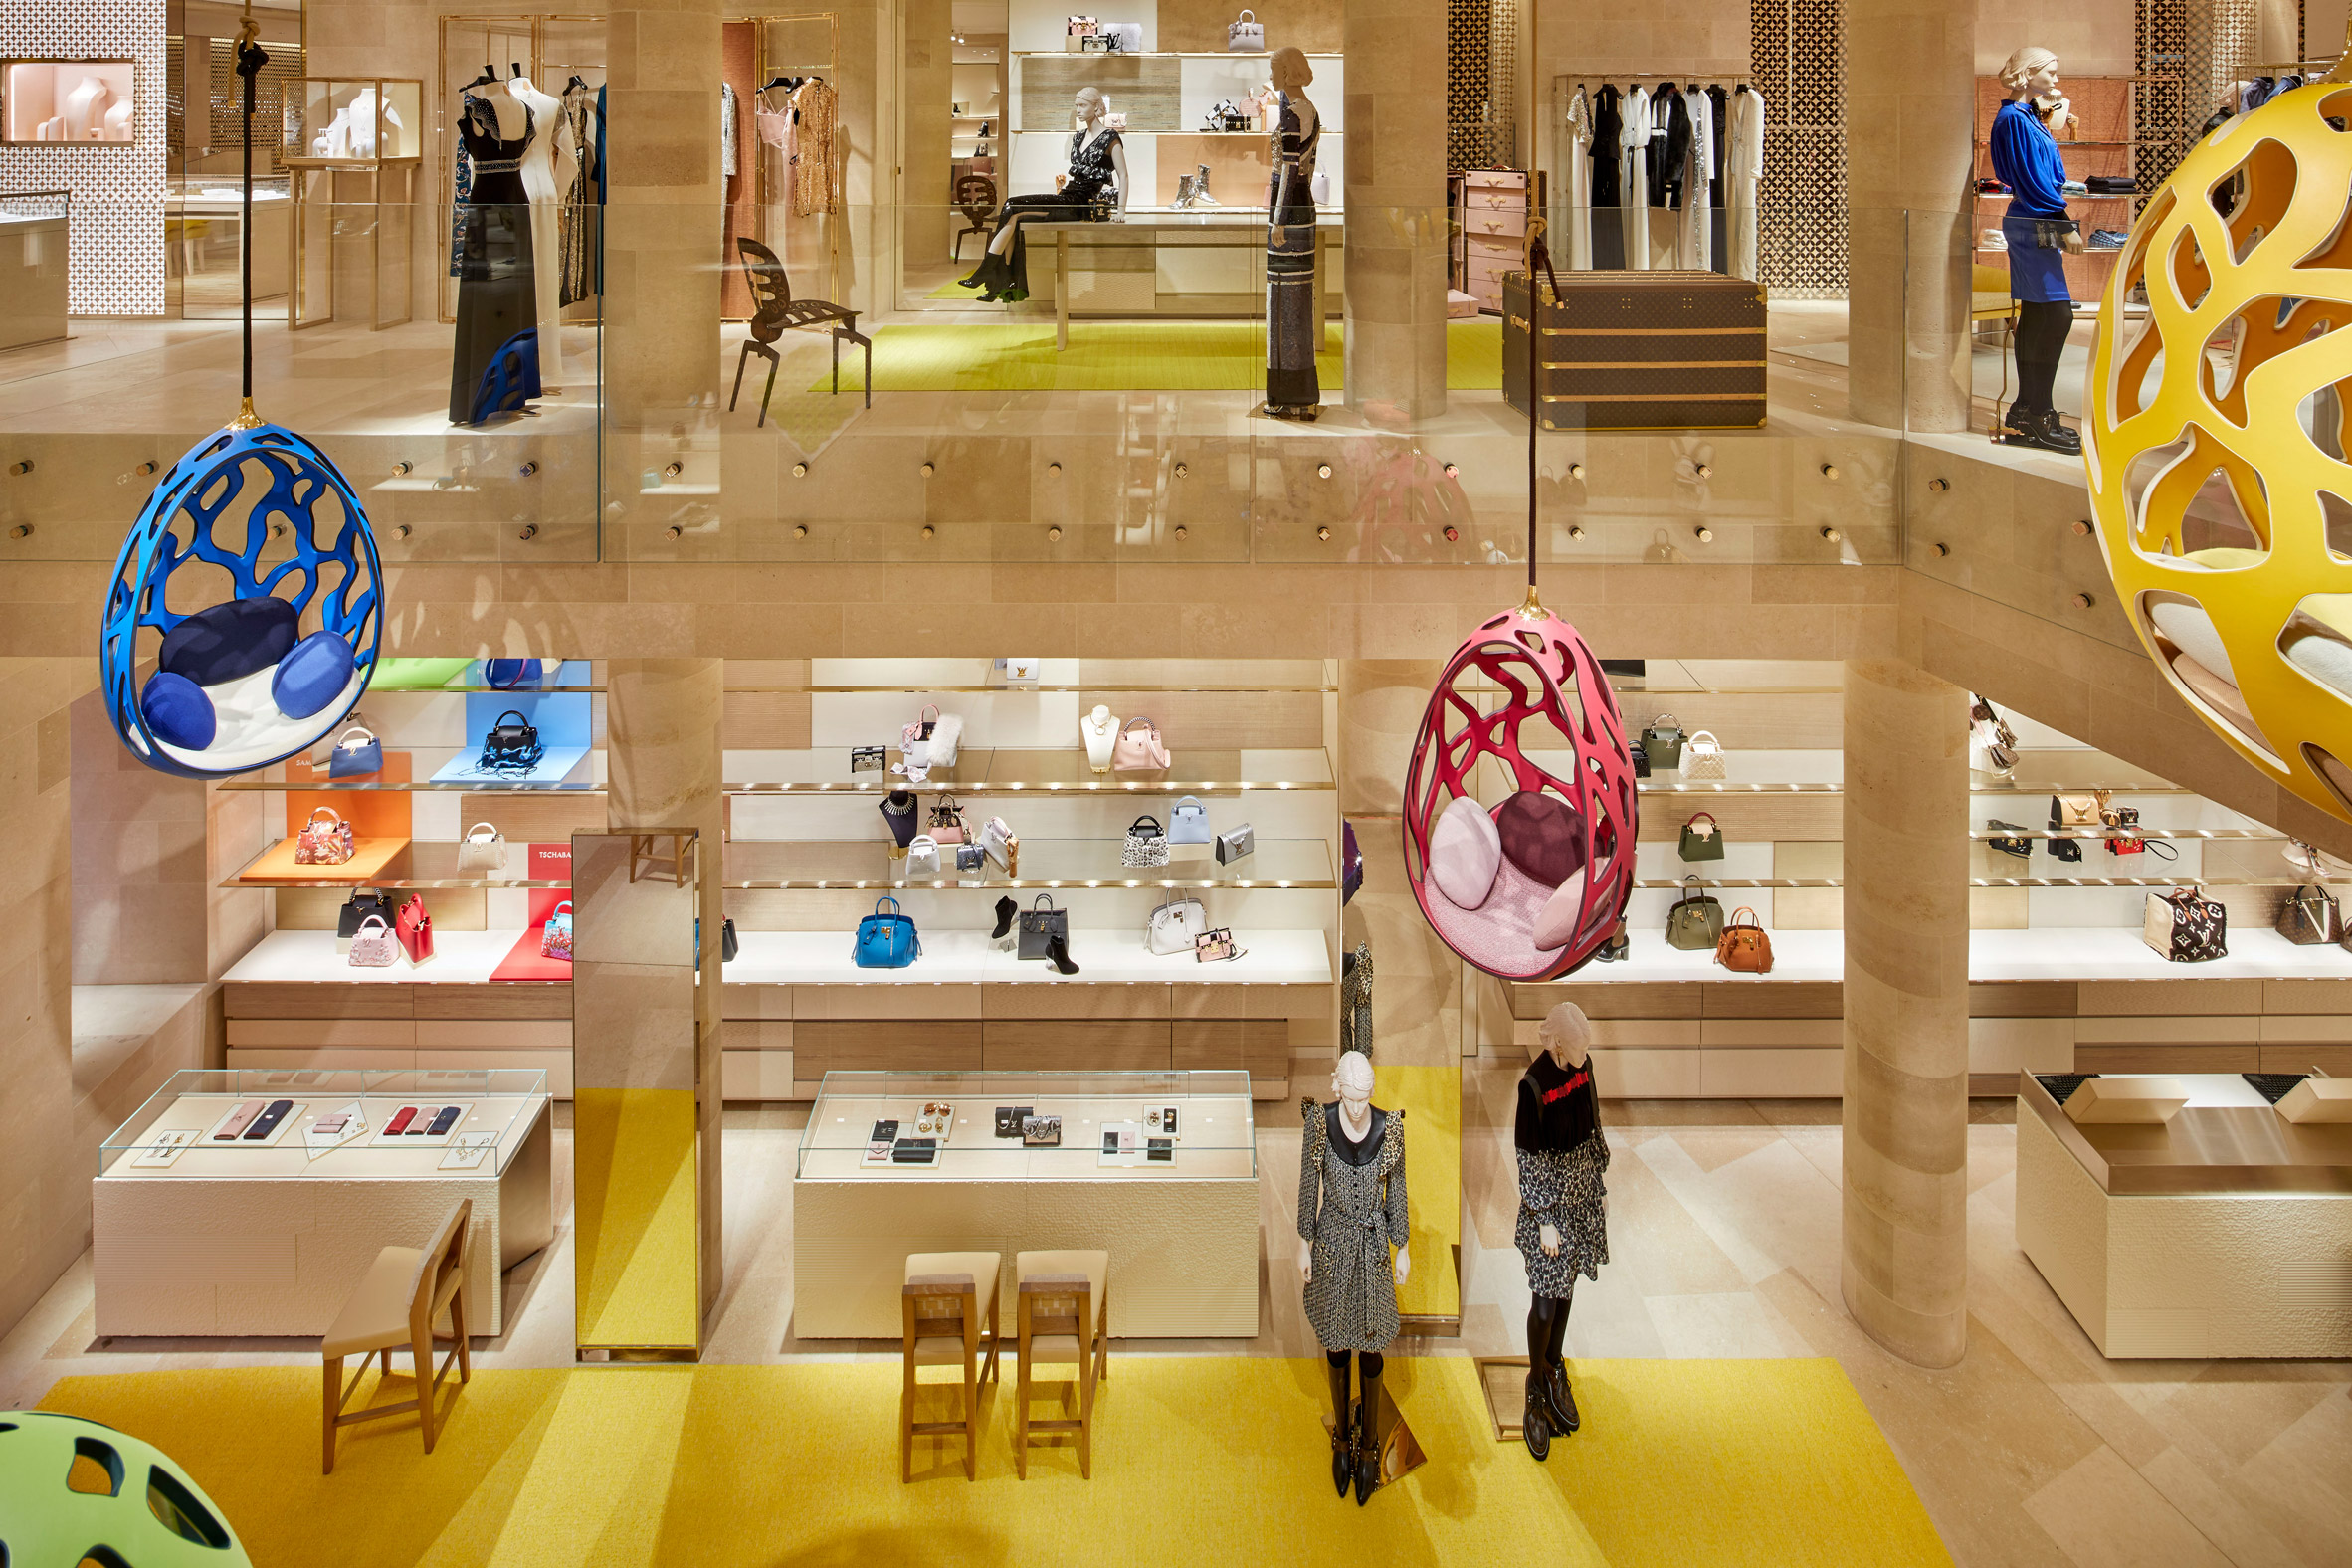 louis-vuitton-new-bond-street-london-shop-interiors-peter-marino_dezeen_2364_col_24